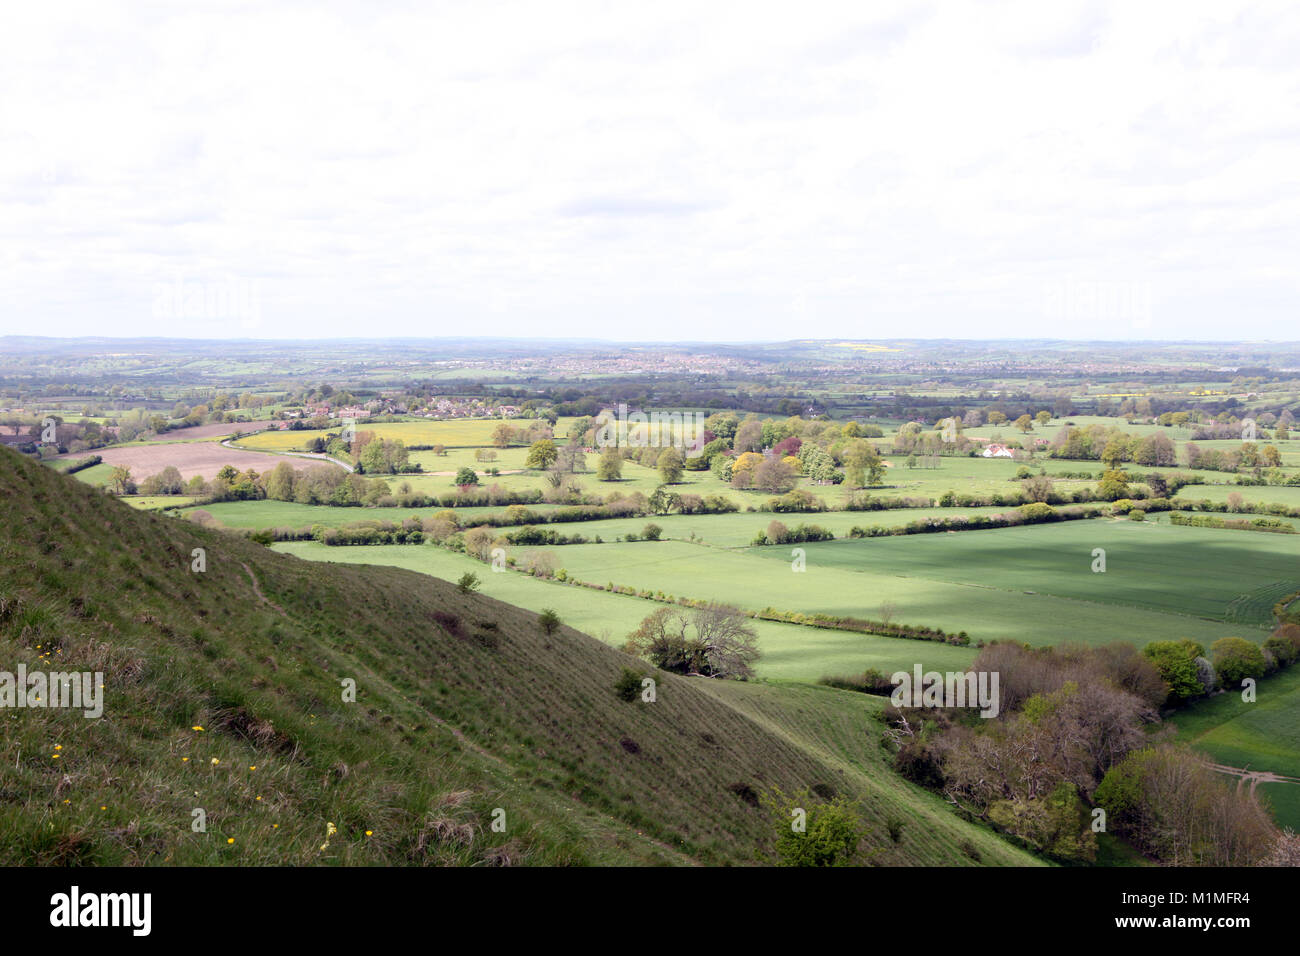 View towards the town of Frome from Cley Hill near Longleat in Wiltshire. UK - Stock Image